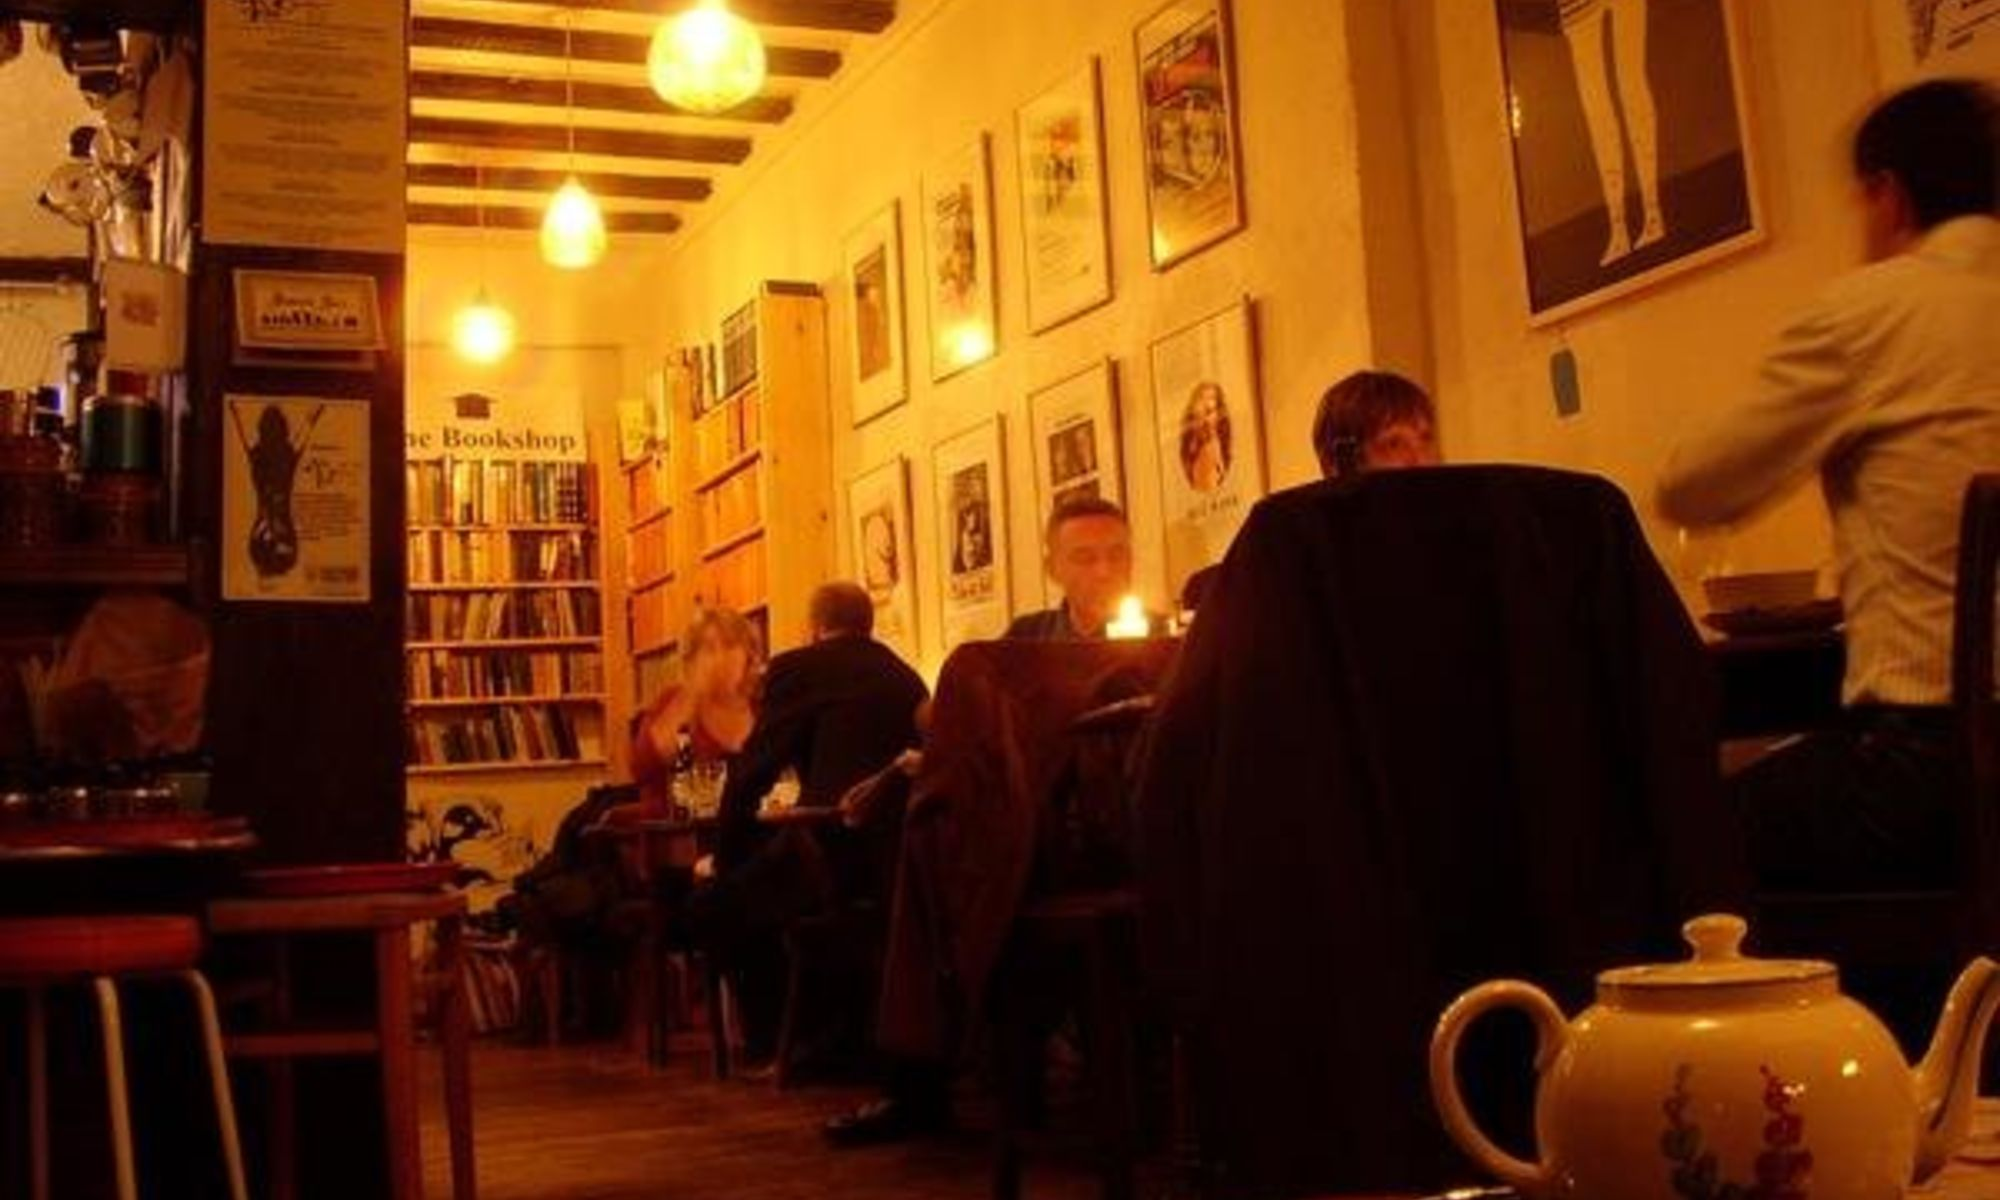 The Art of Tea study places Manchester